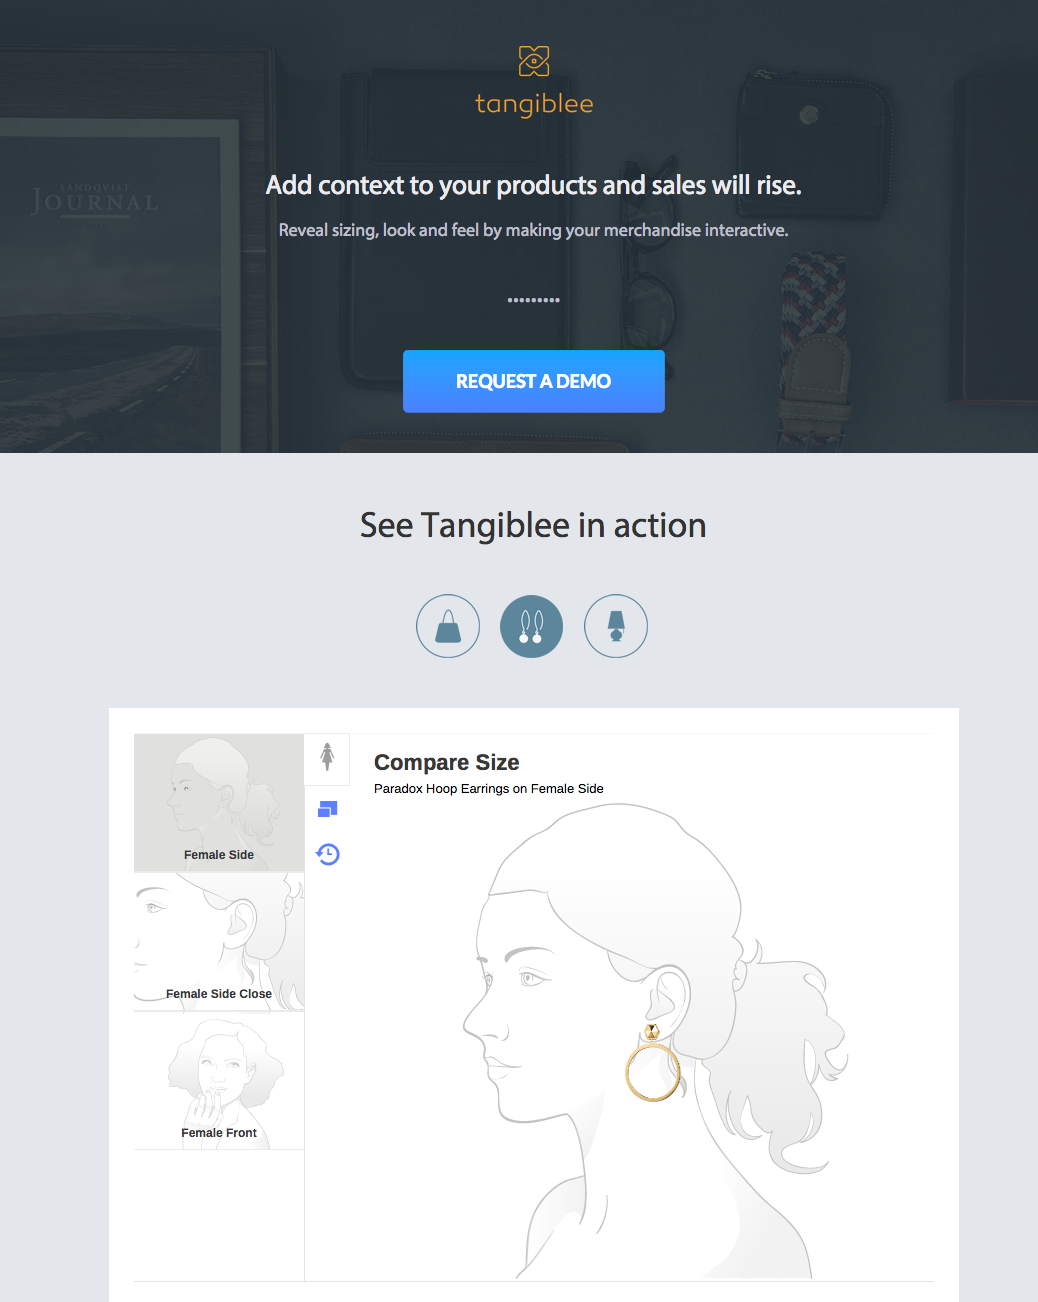 Add context to your products and sales will rise. Reveal sizing, look and feel by making your merchandise interactive.  https://www.tangiblee.com